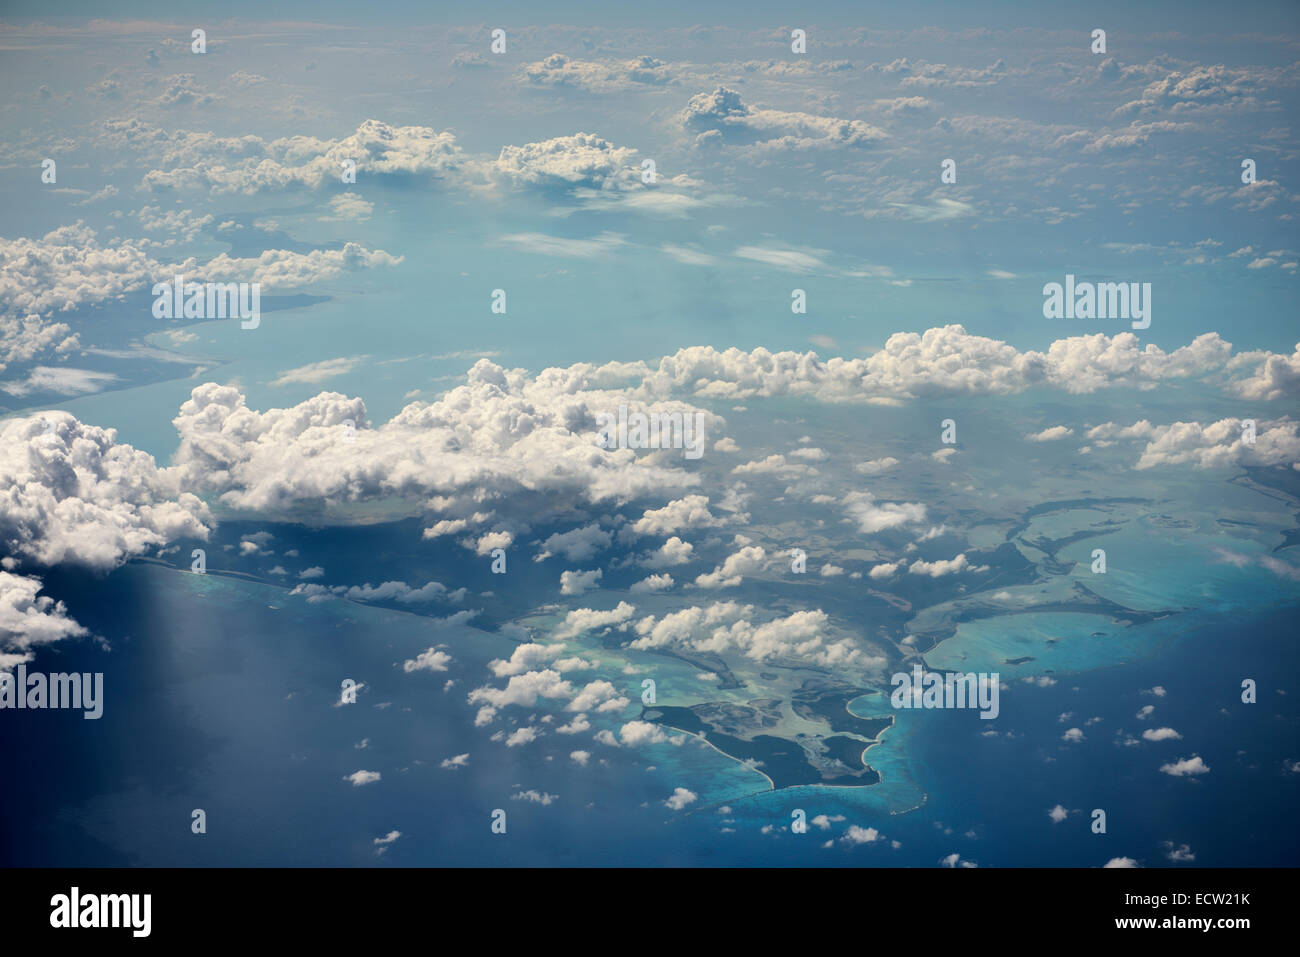 Aerial view of the remote Crooked Island in the Bahamas in the Atlantic Ocean - Stock Image